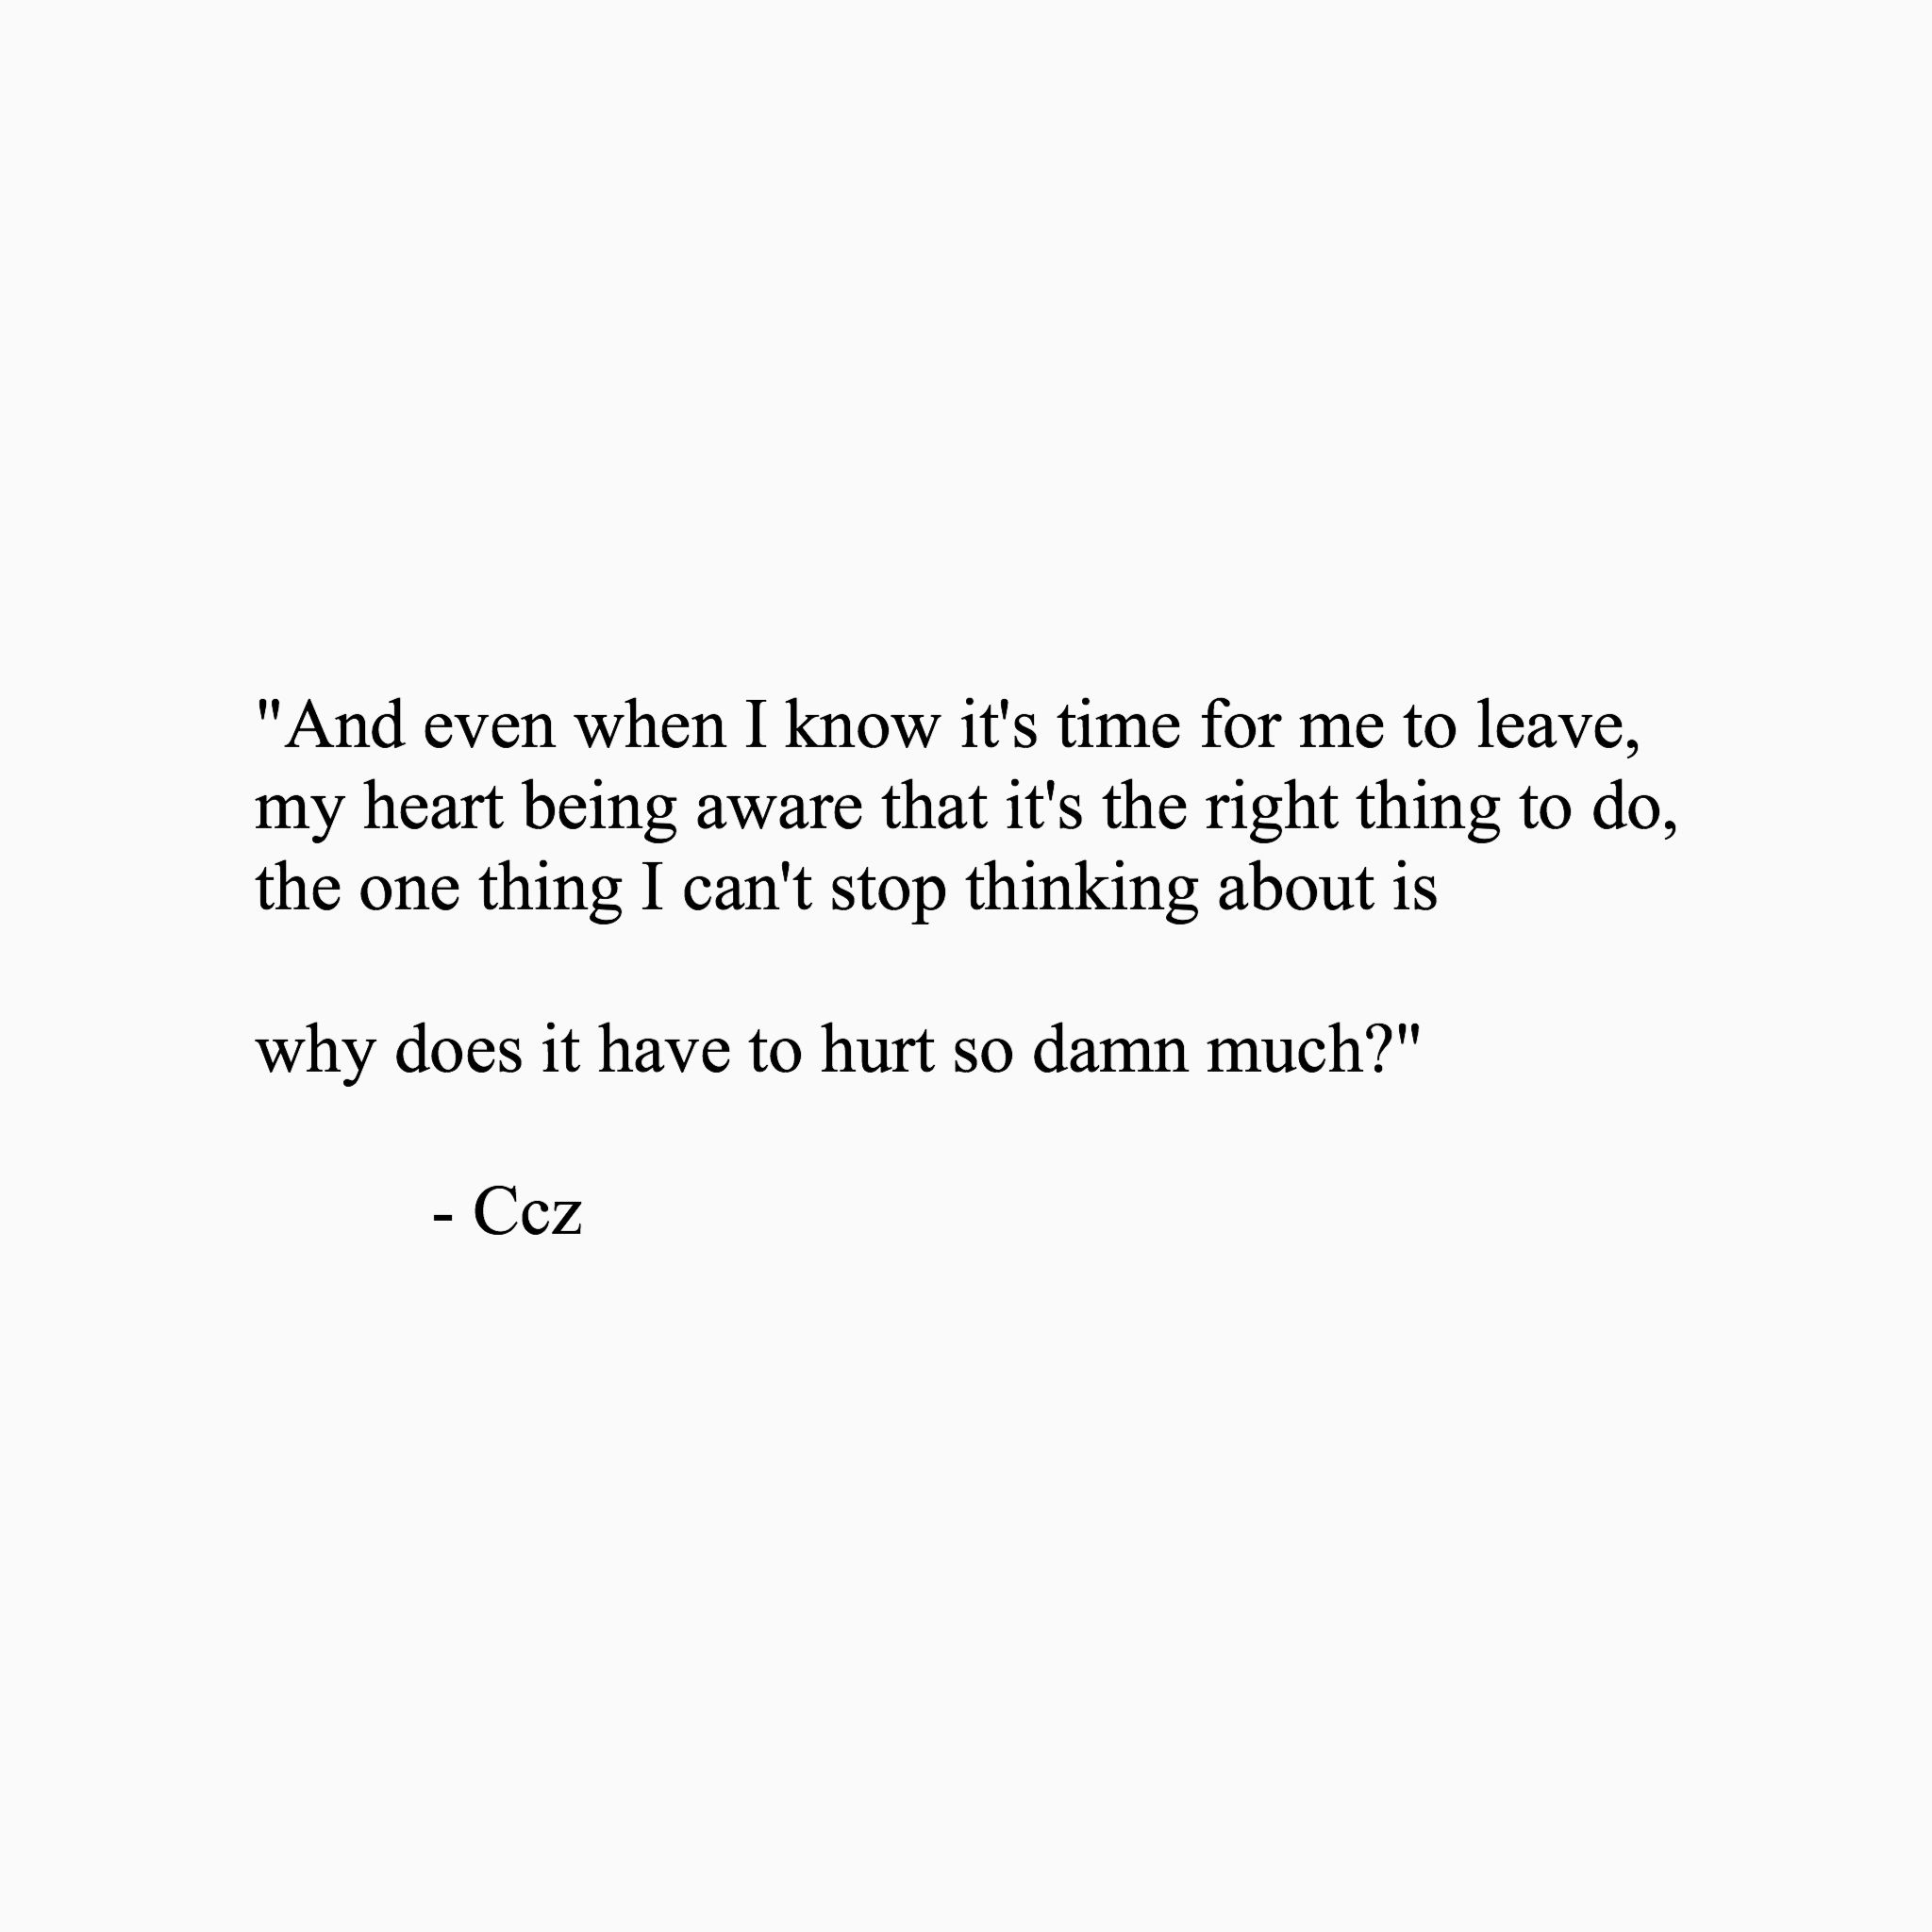 Sad Quotes About Love: Why Does It Hurt So Much